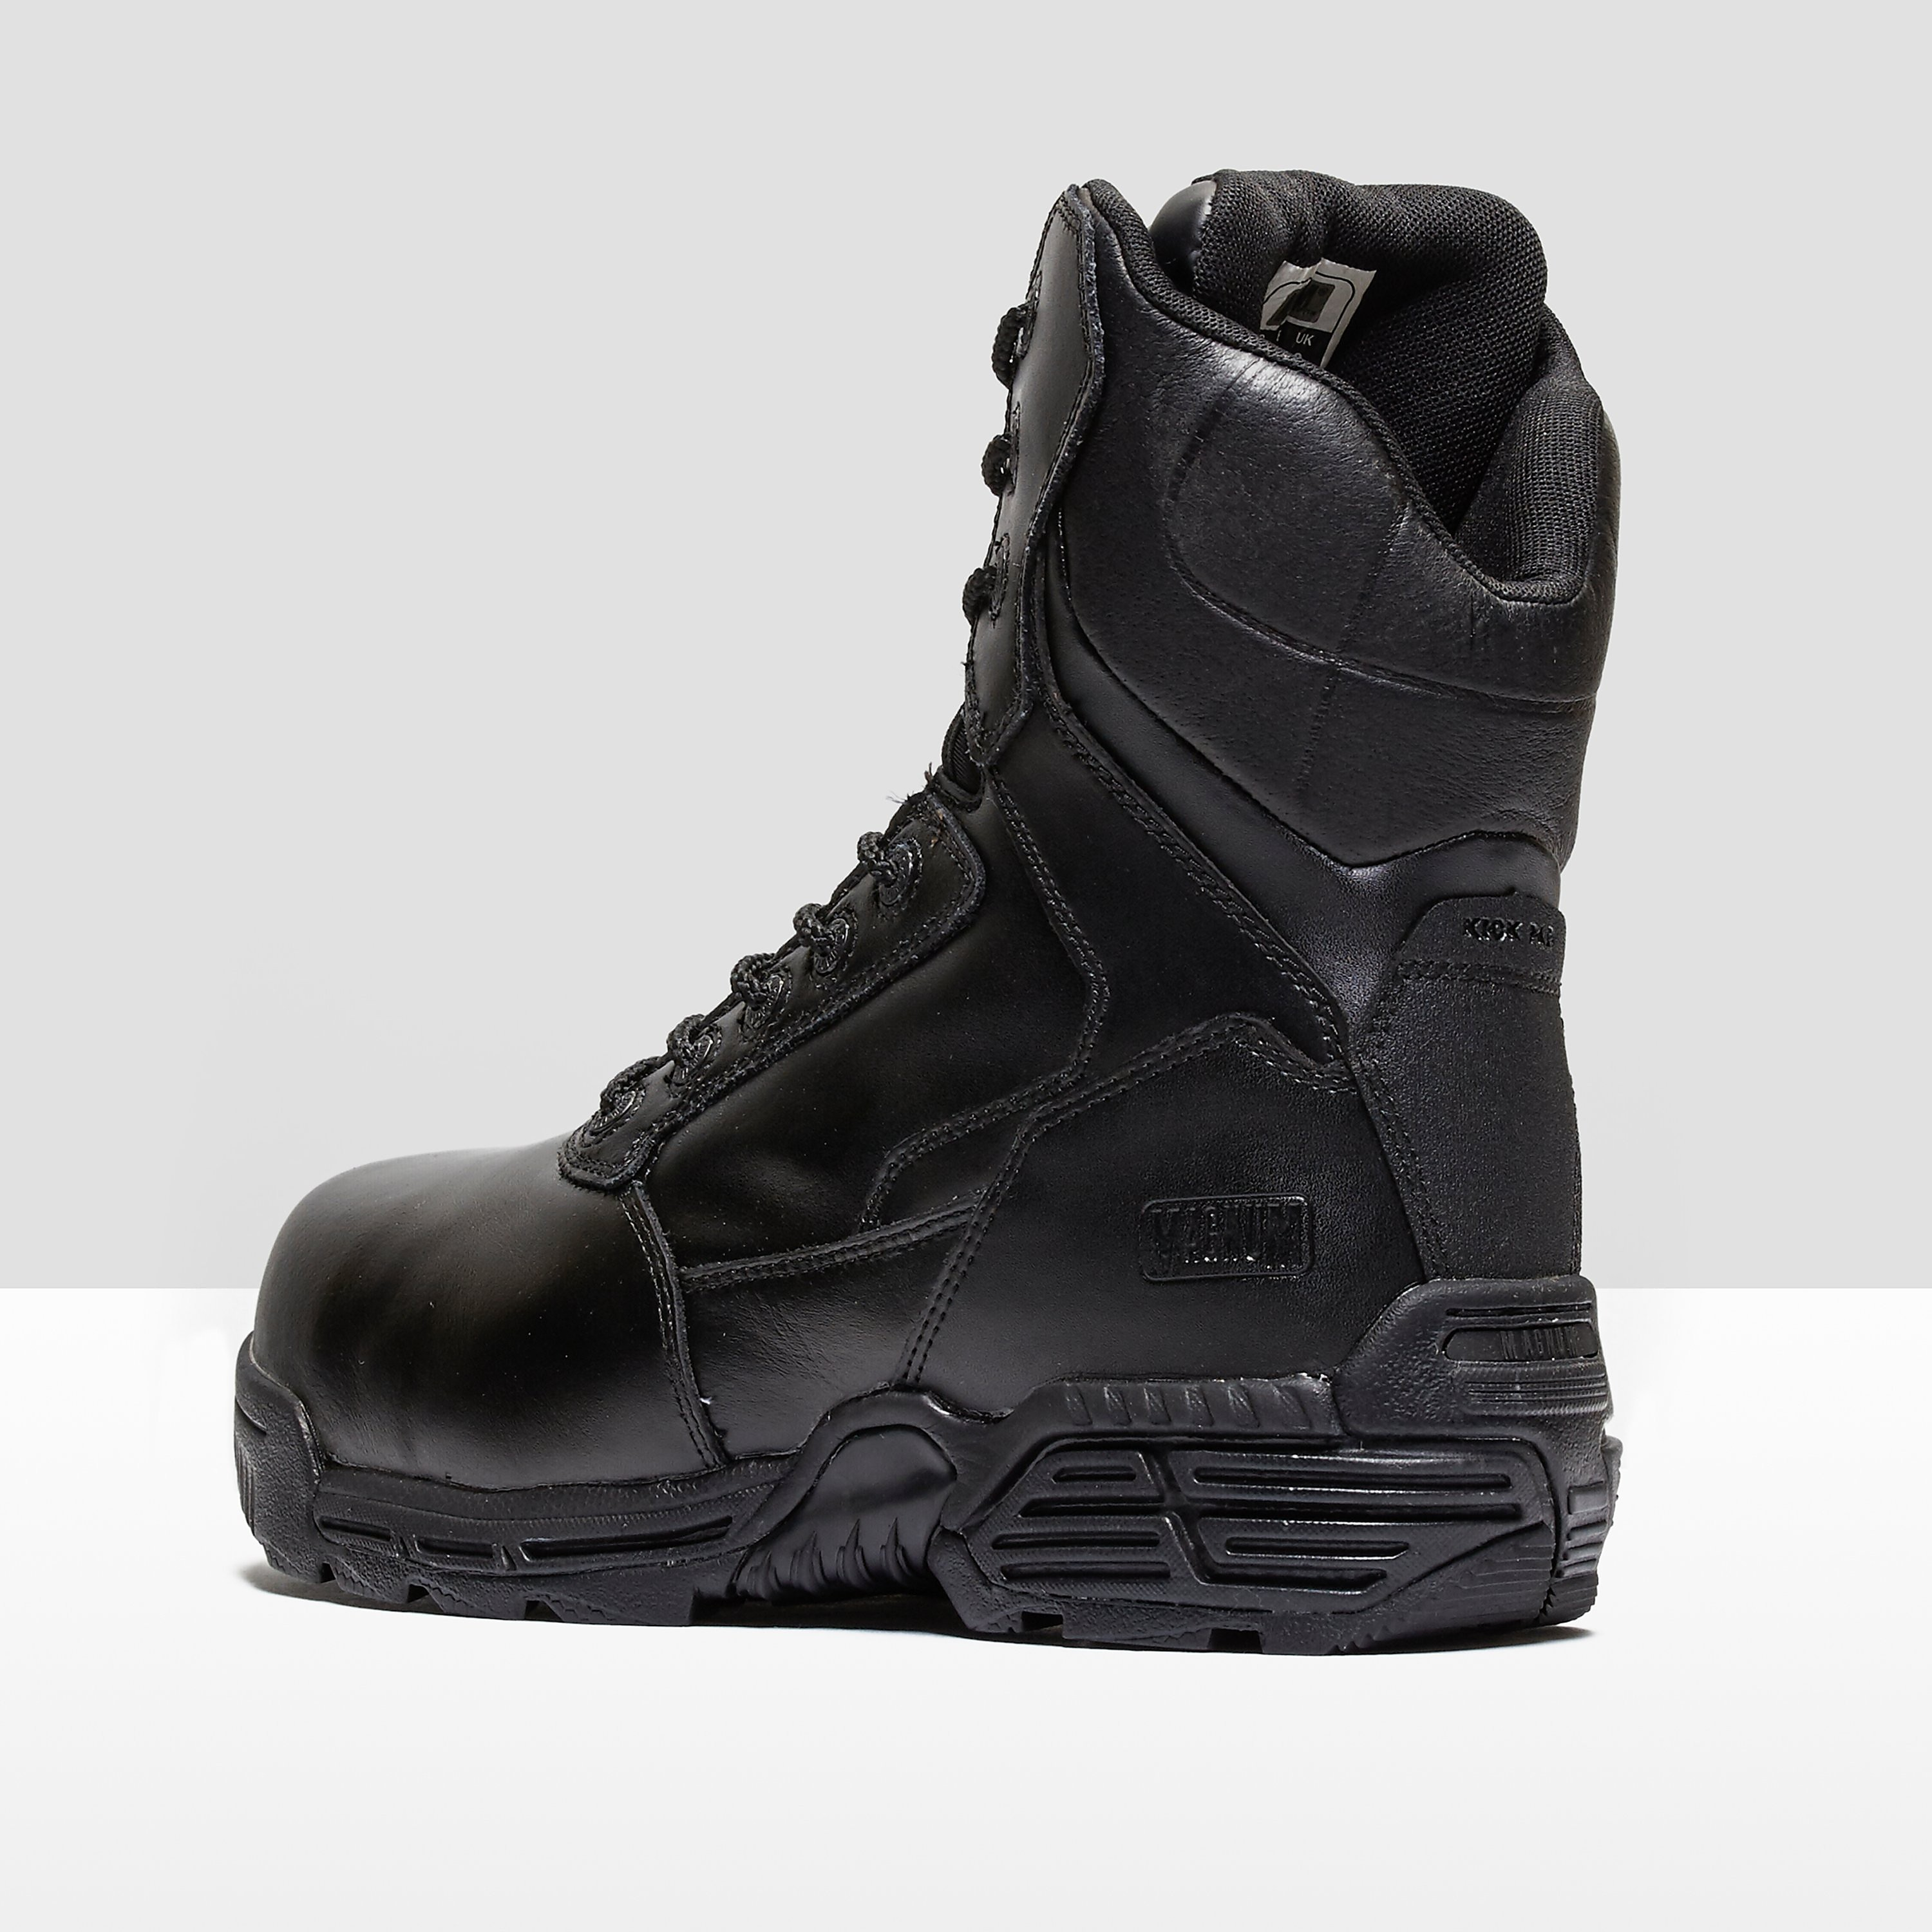 Magnum Stealth Force 8.0 Leather Men's Safety Boots